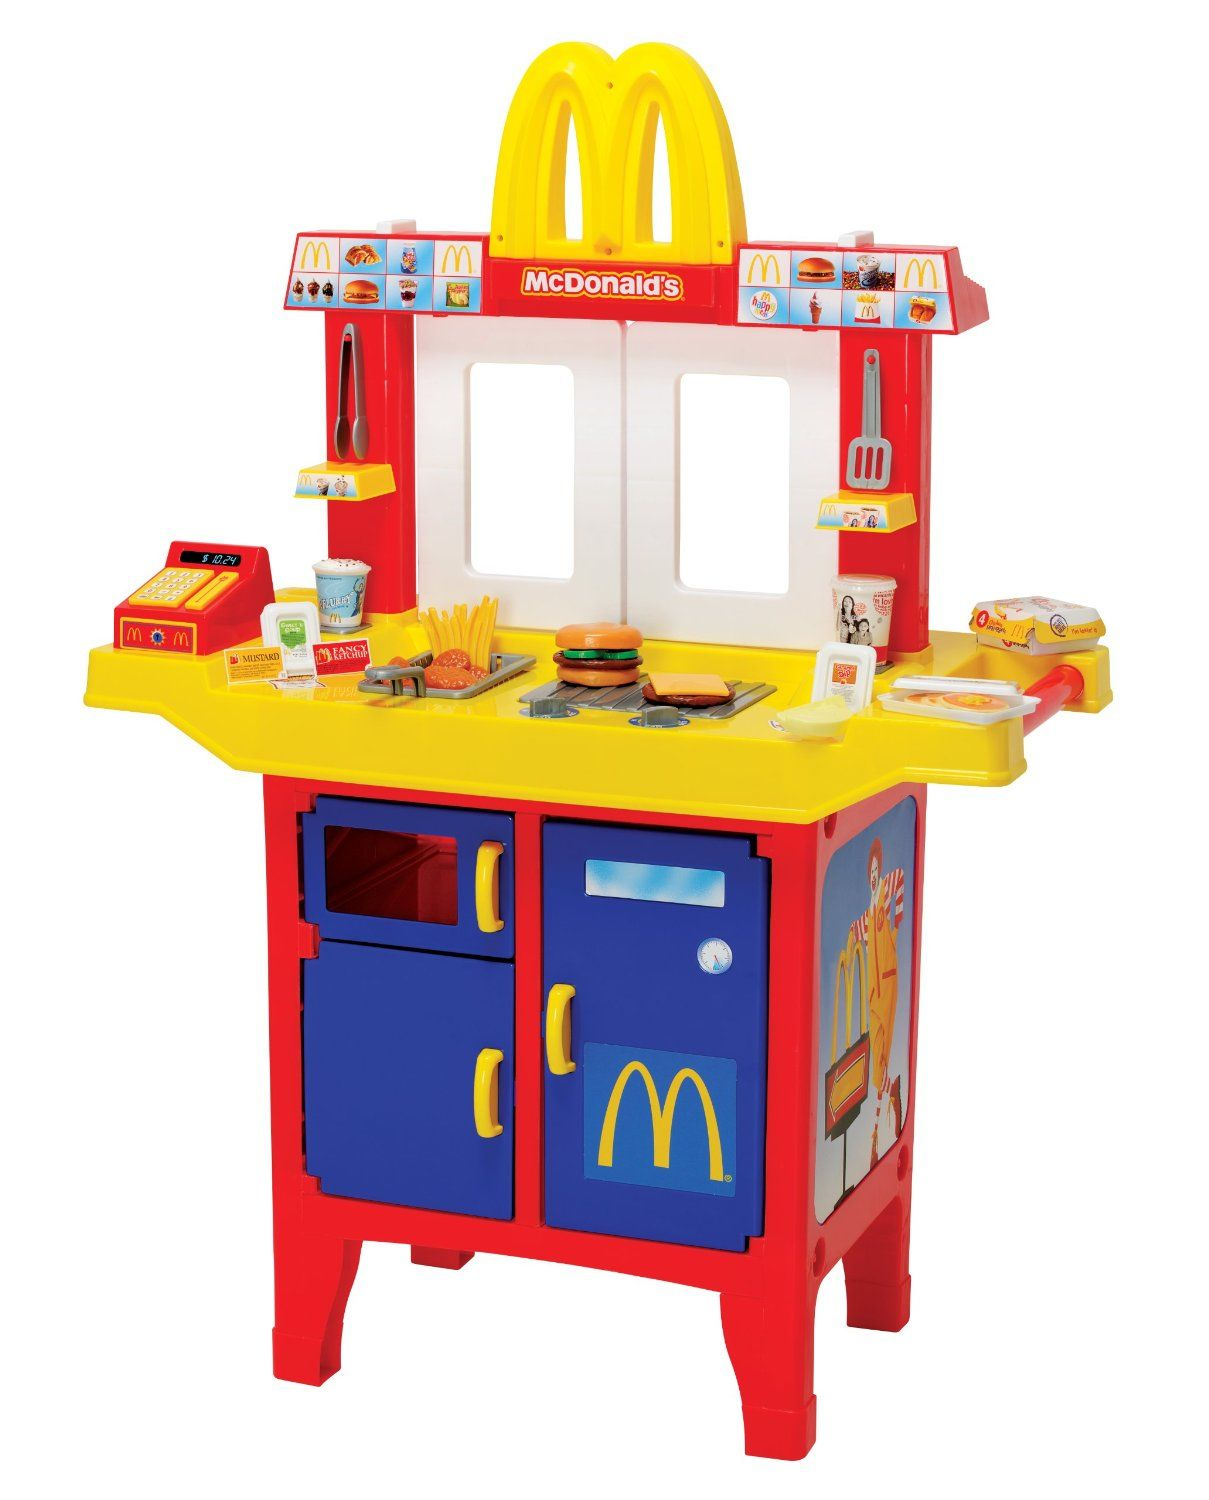 Mcdonalds French Fries Maker Happy Meal Magic Vintage Mcdonalds Food Toys Pretend Play Toy For Kids